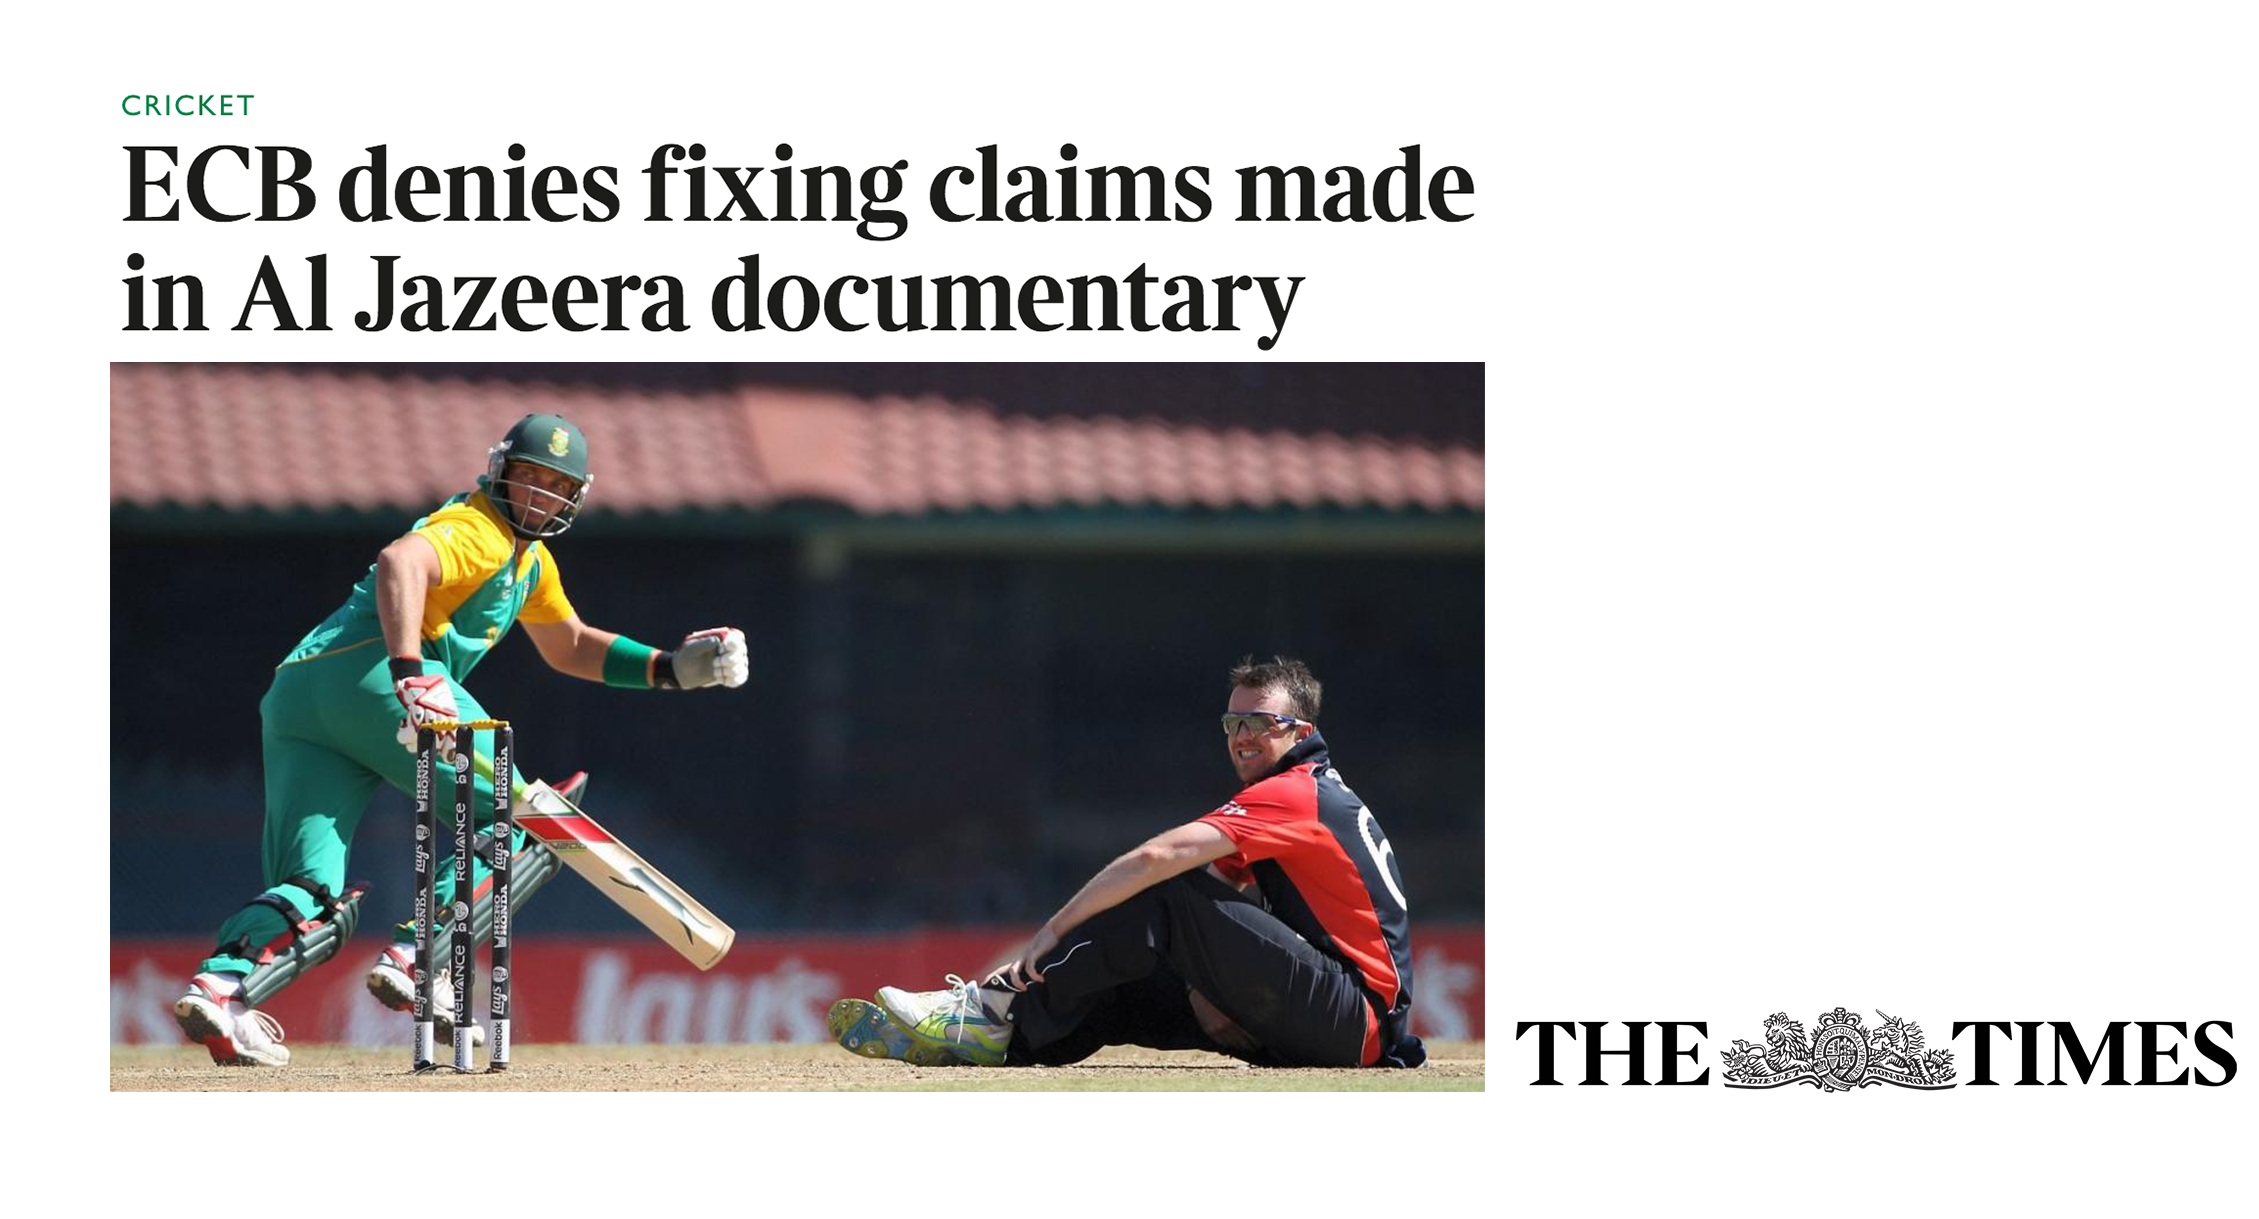 The Times: England players among top cricketers in new 'spot-fixing' claims